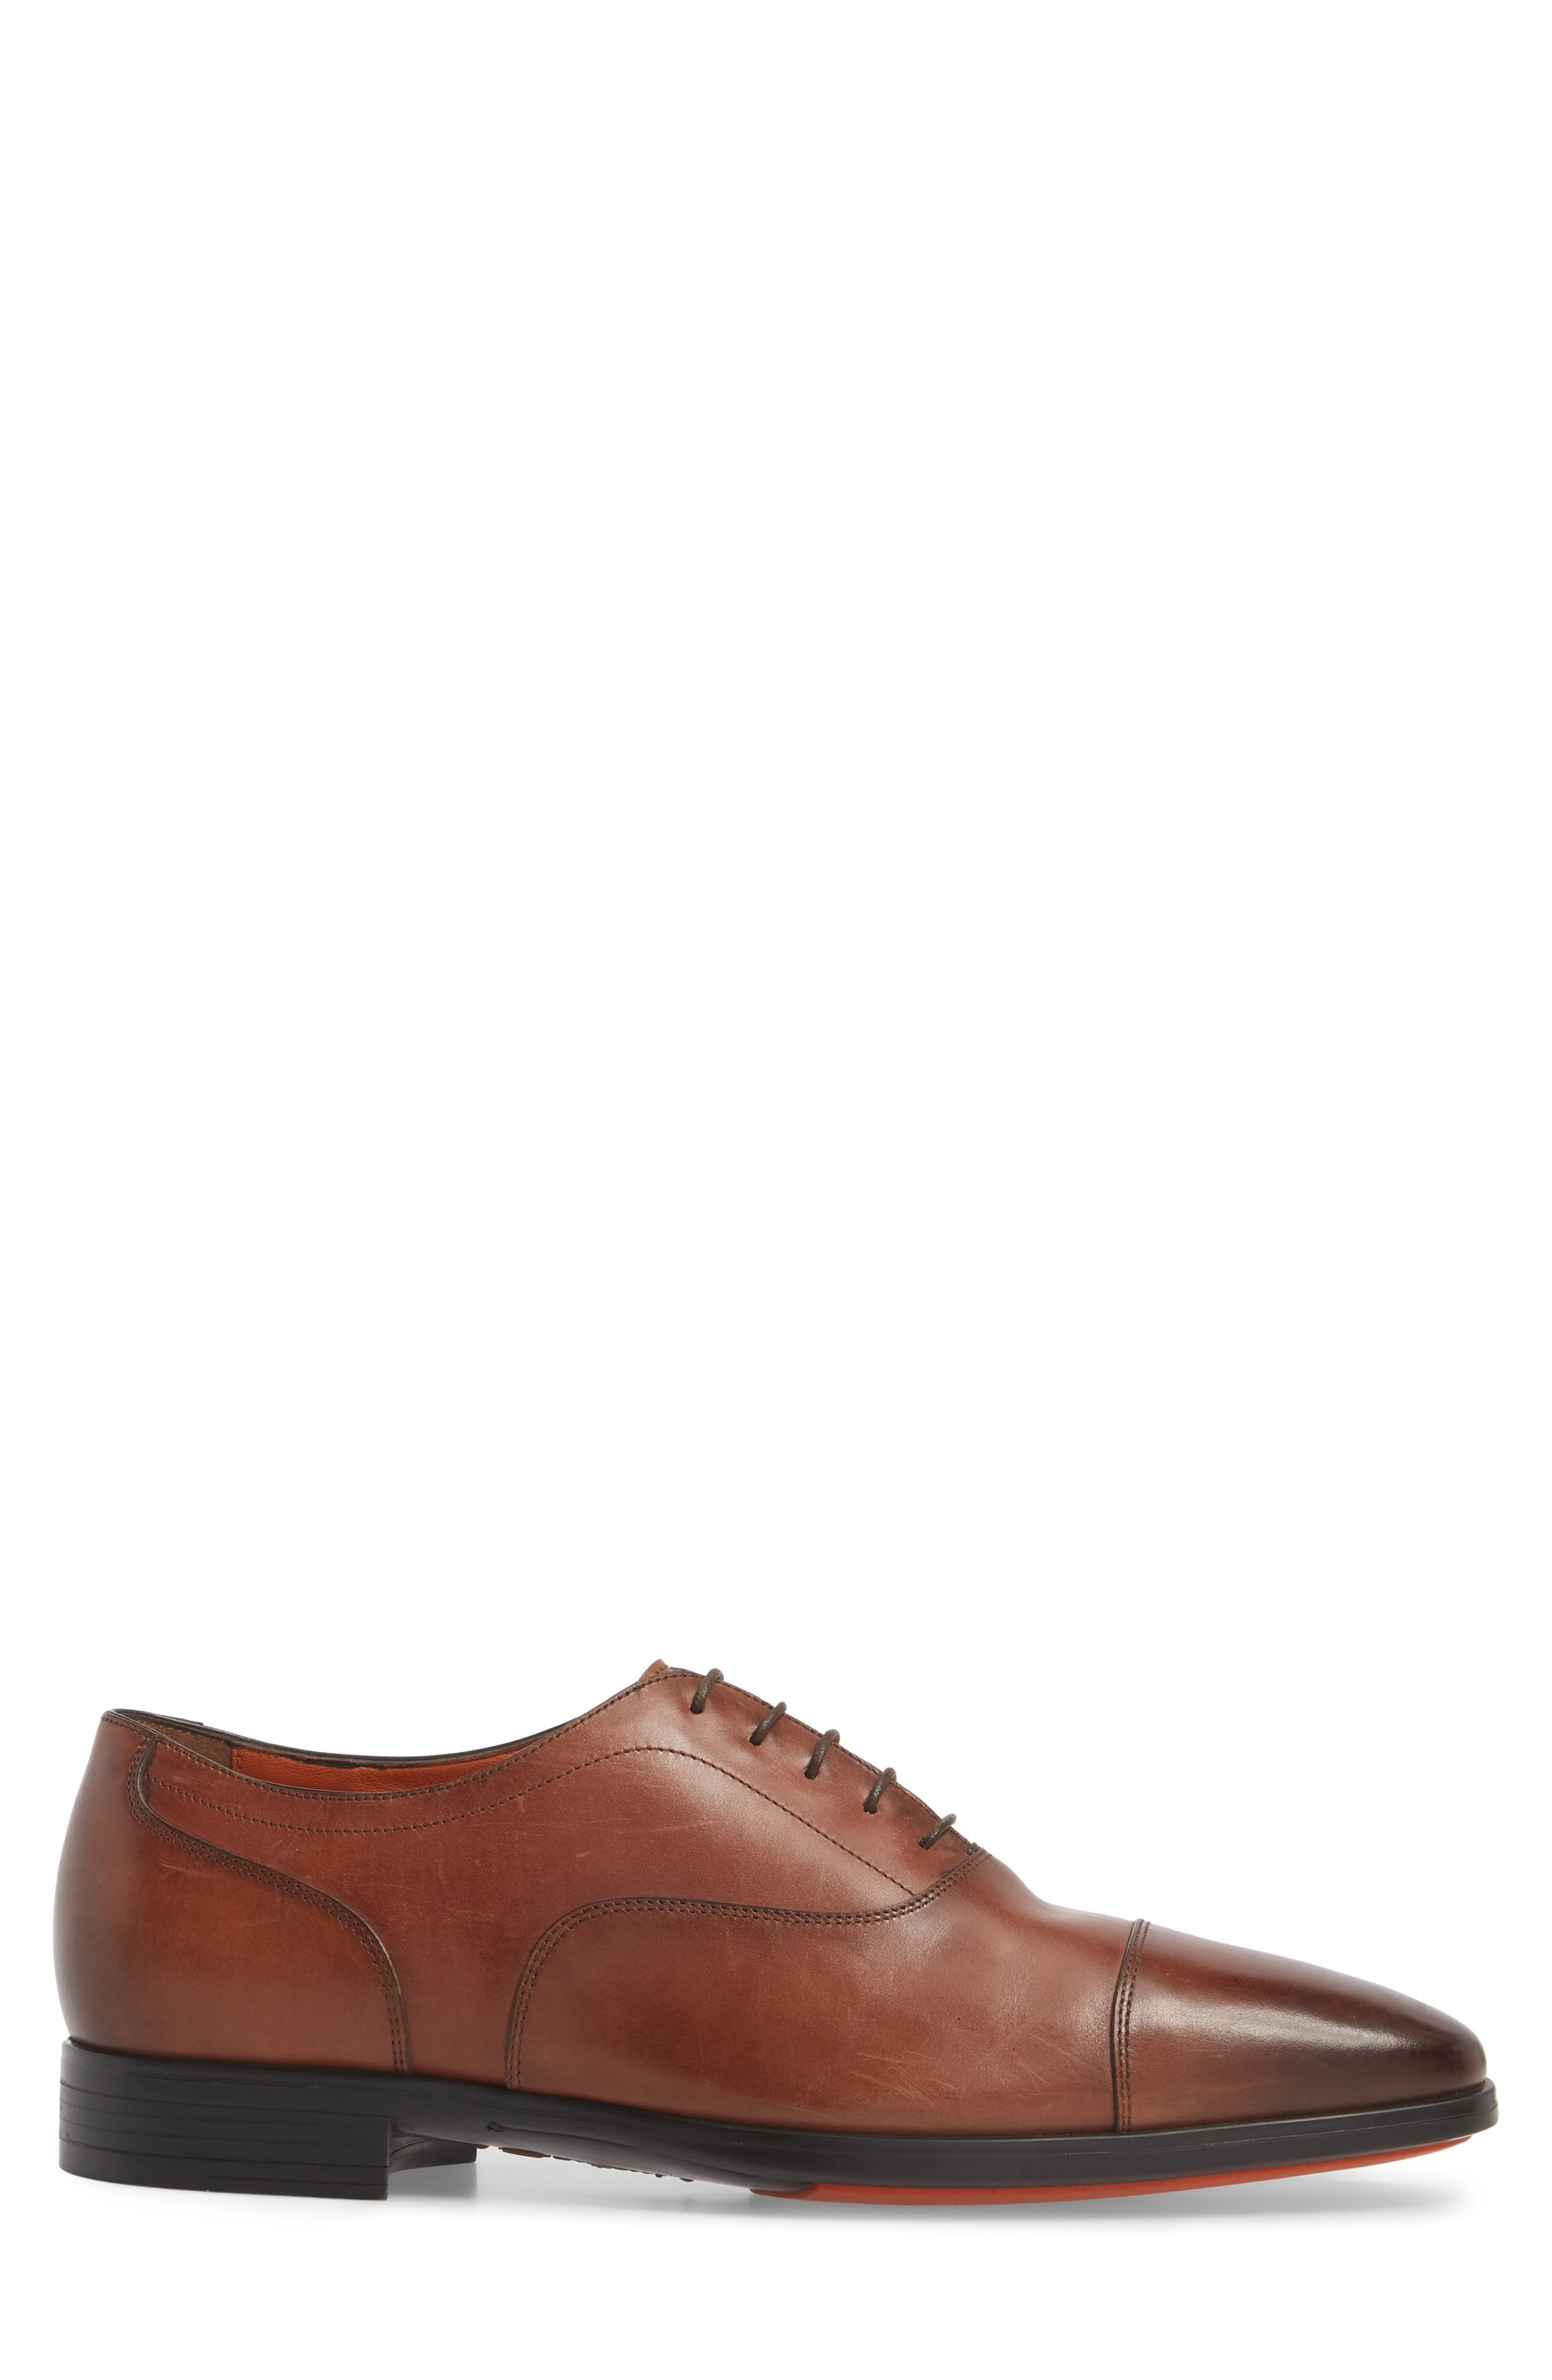 Eamon Cap Toe,                             Alternate thumbnail 3, color,                             Brown